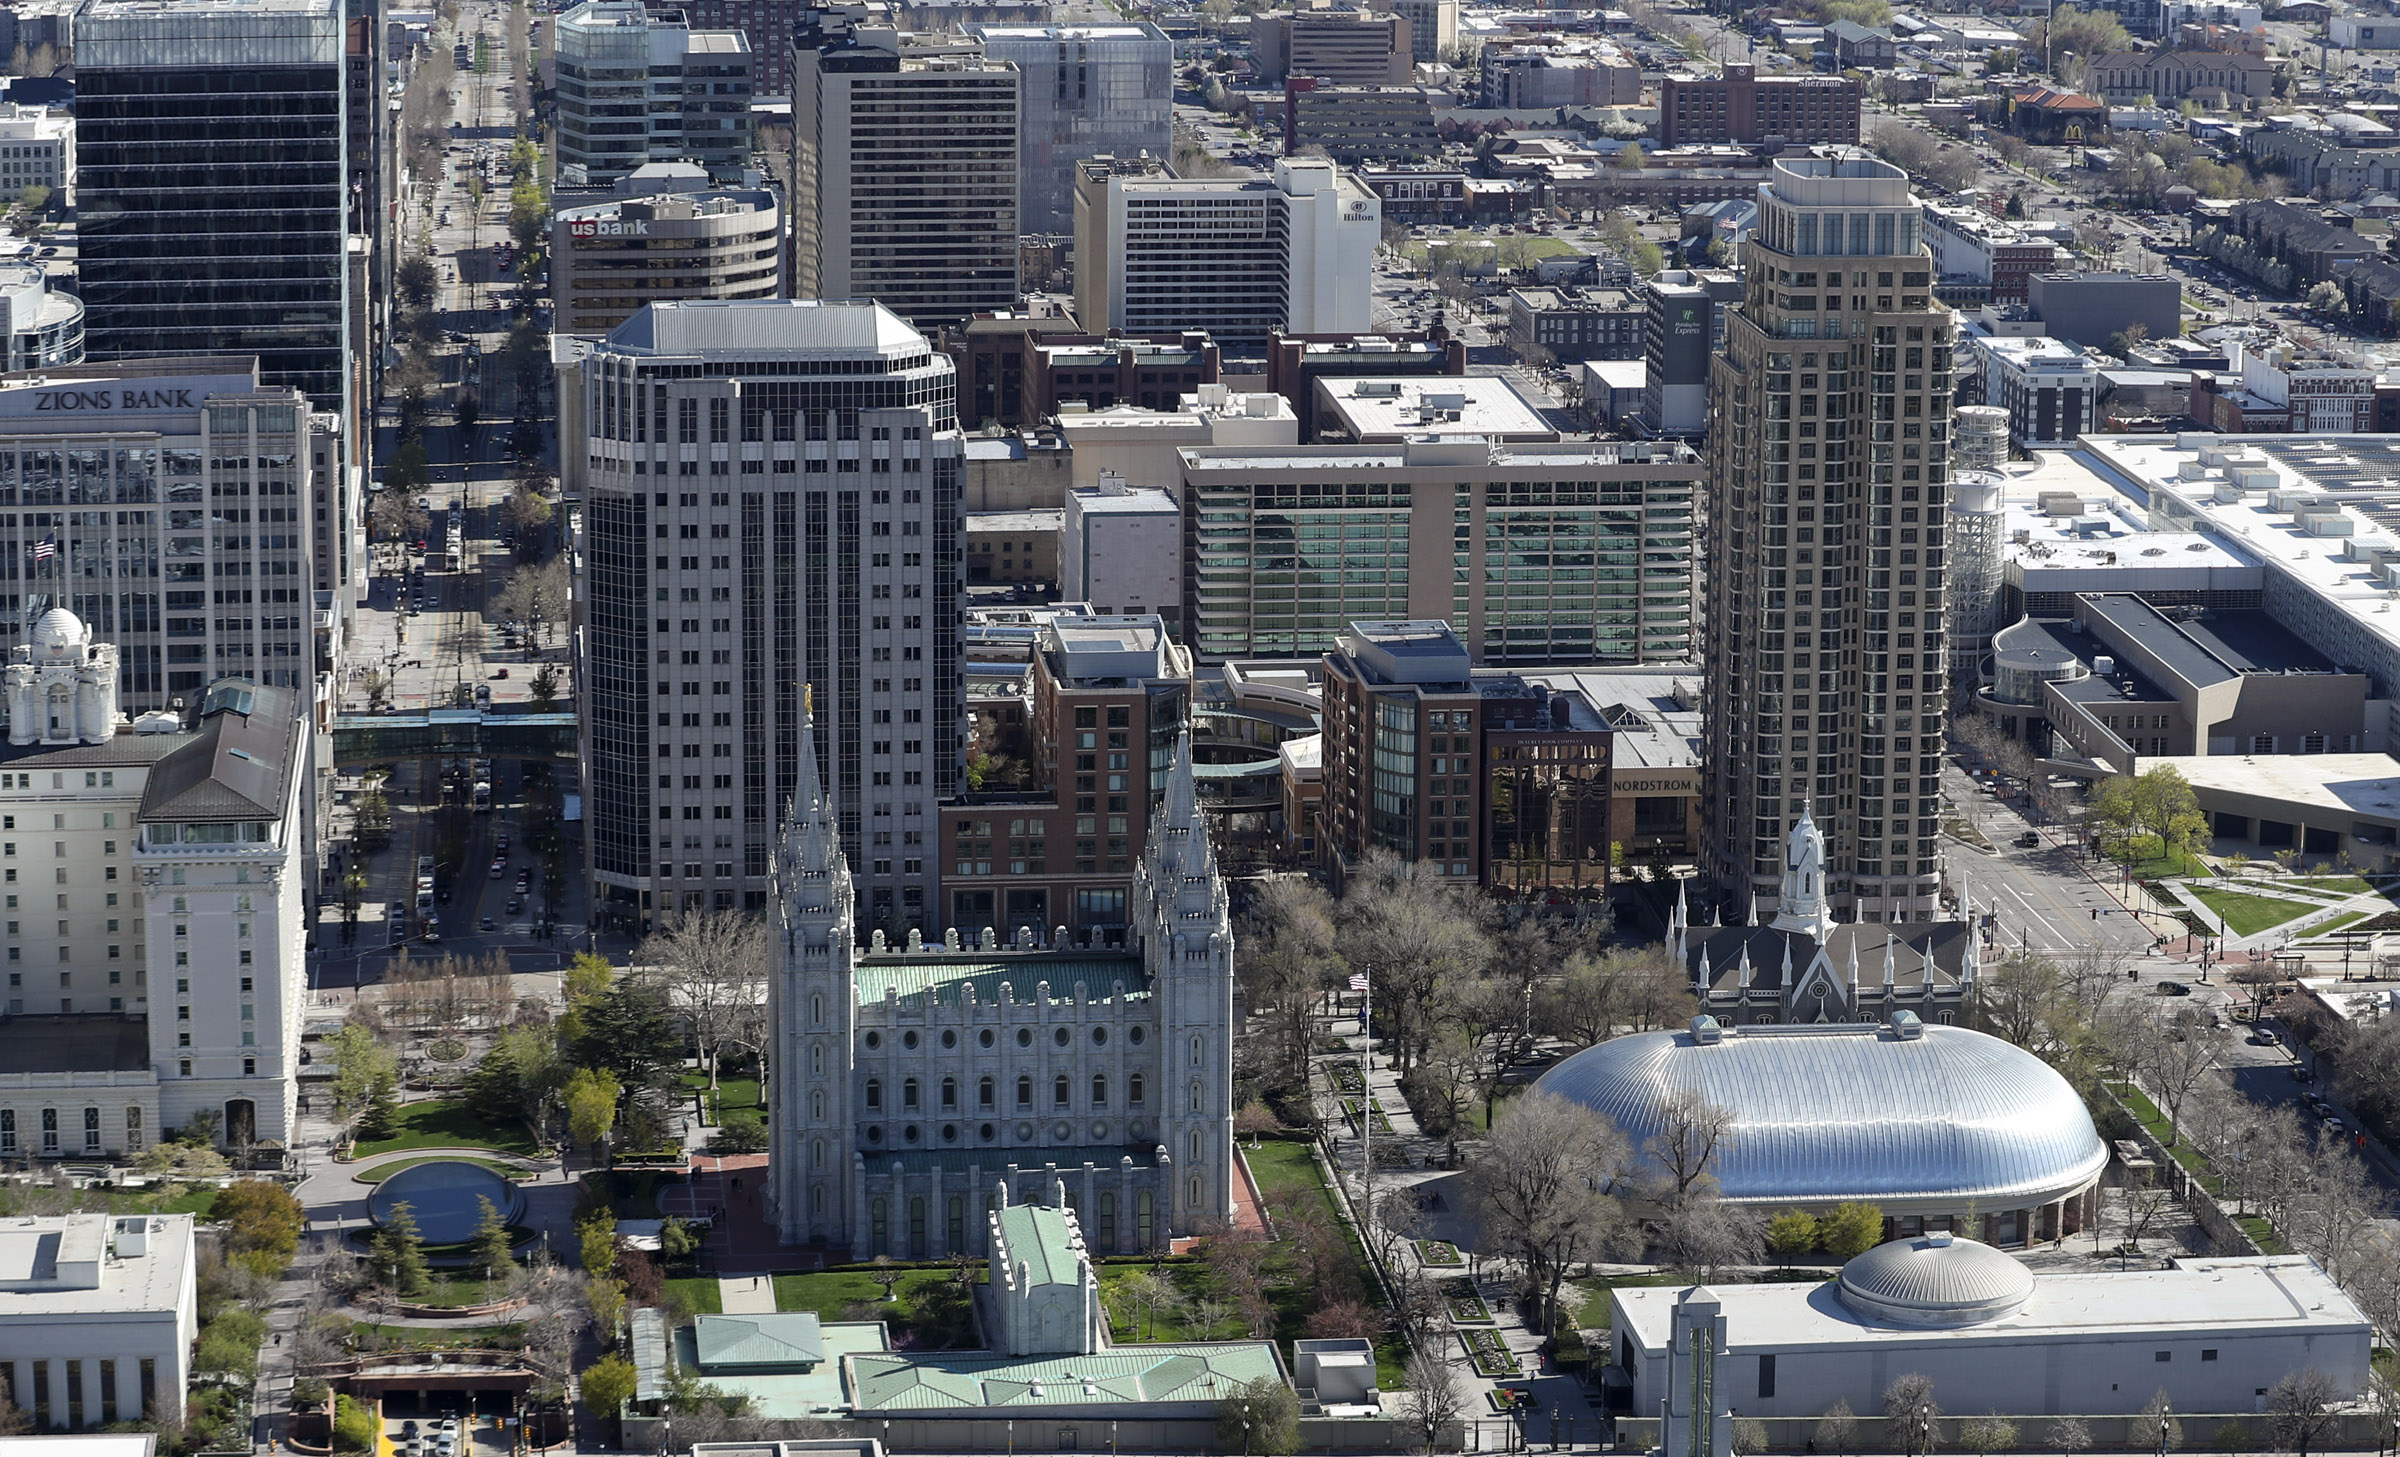 Temple Square and downtown Salt Lake City on Thursday, April 18, 2019.